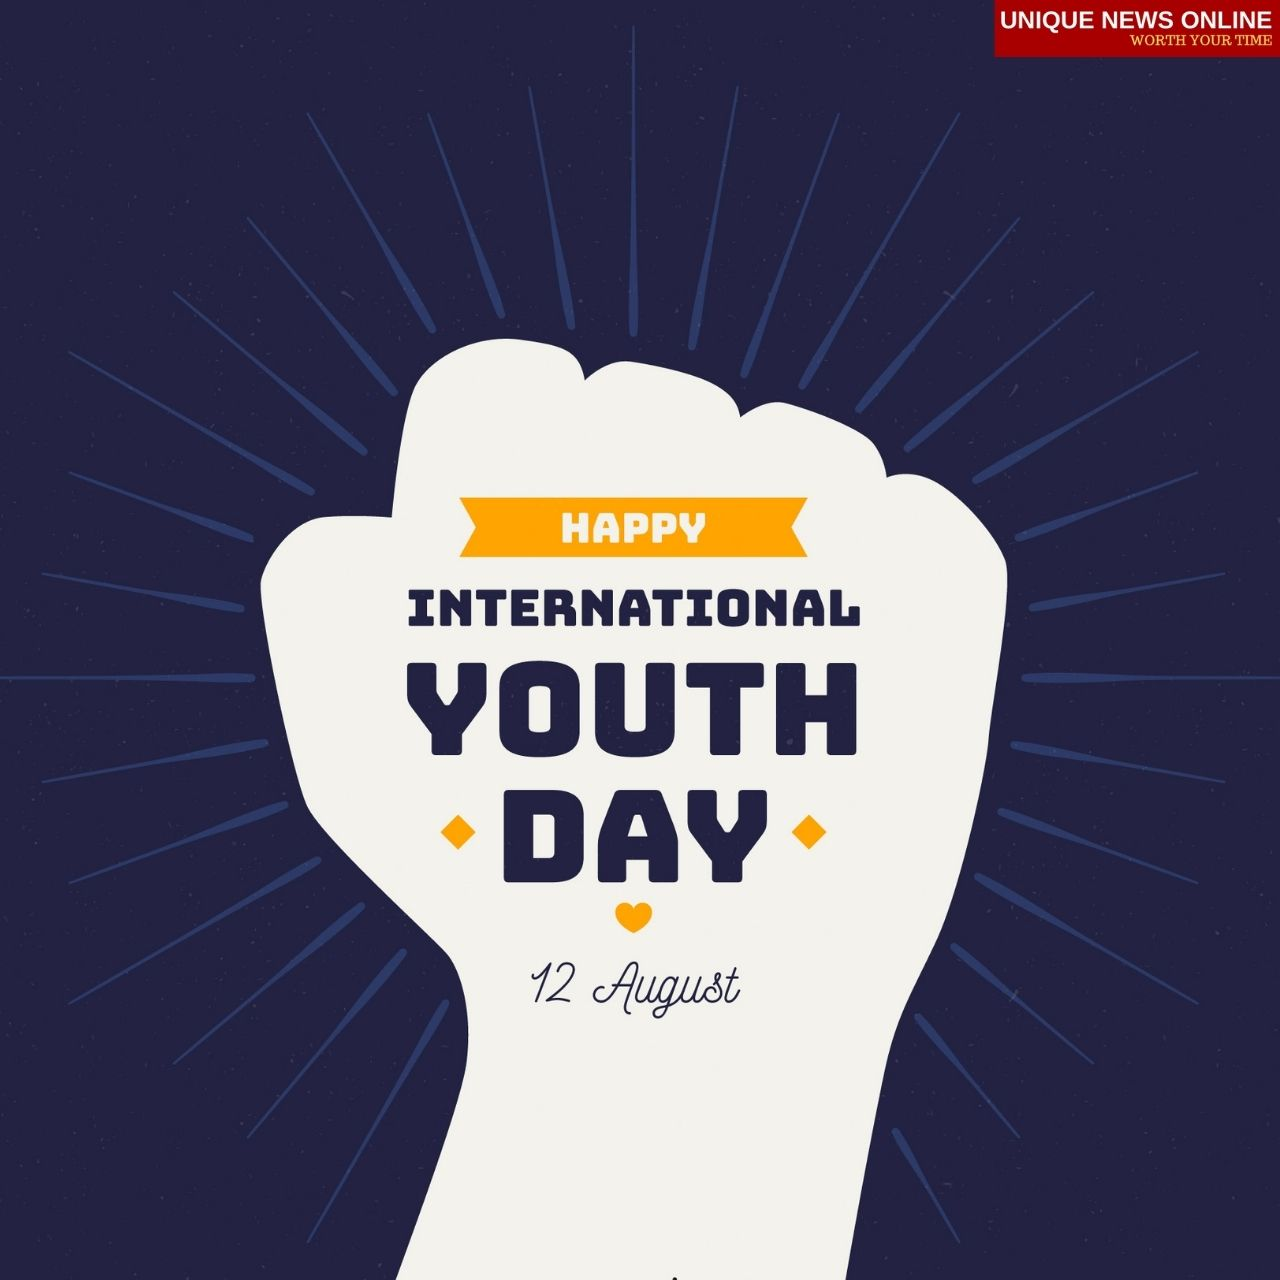 International Youth Day 2021 Theme, Wishes, Quotes, Slogan, Poster, Messages, Greetings, Status and HD Images to Share